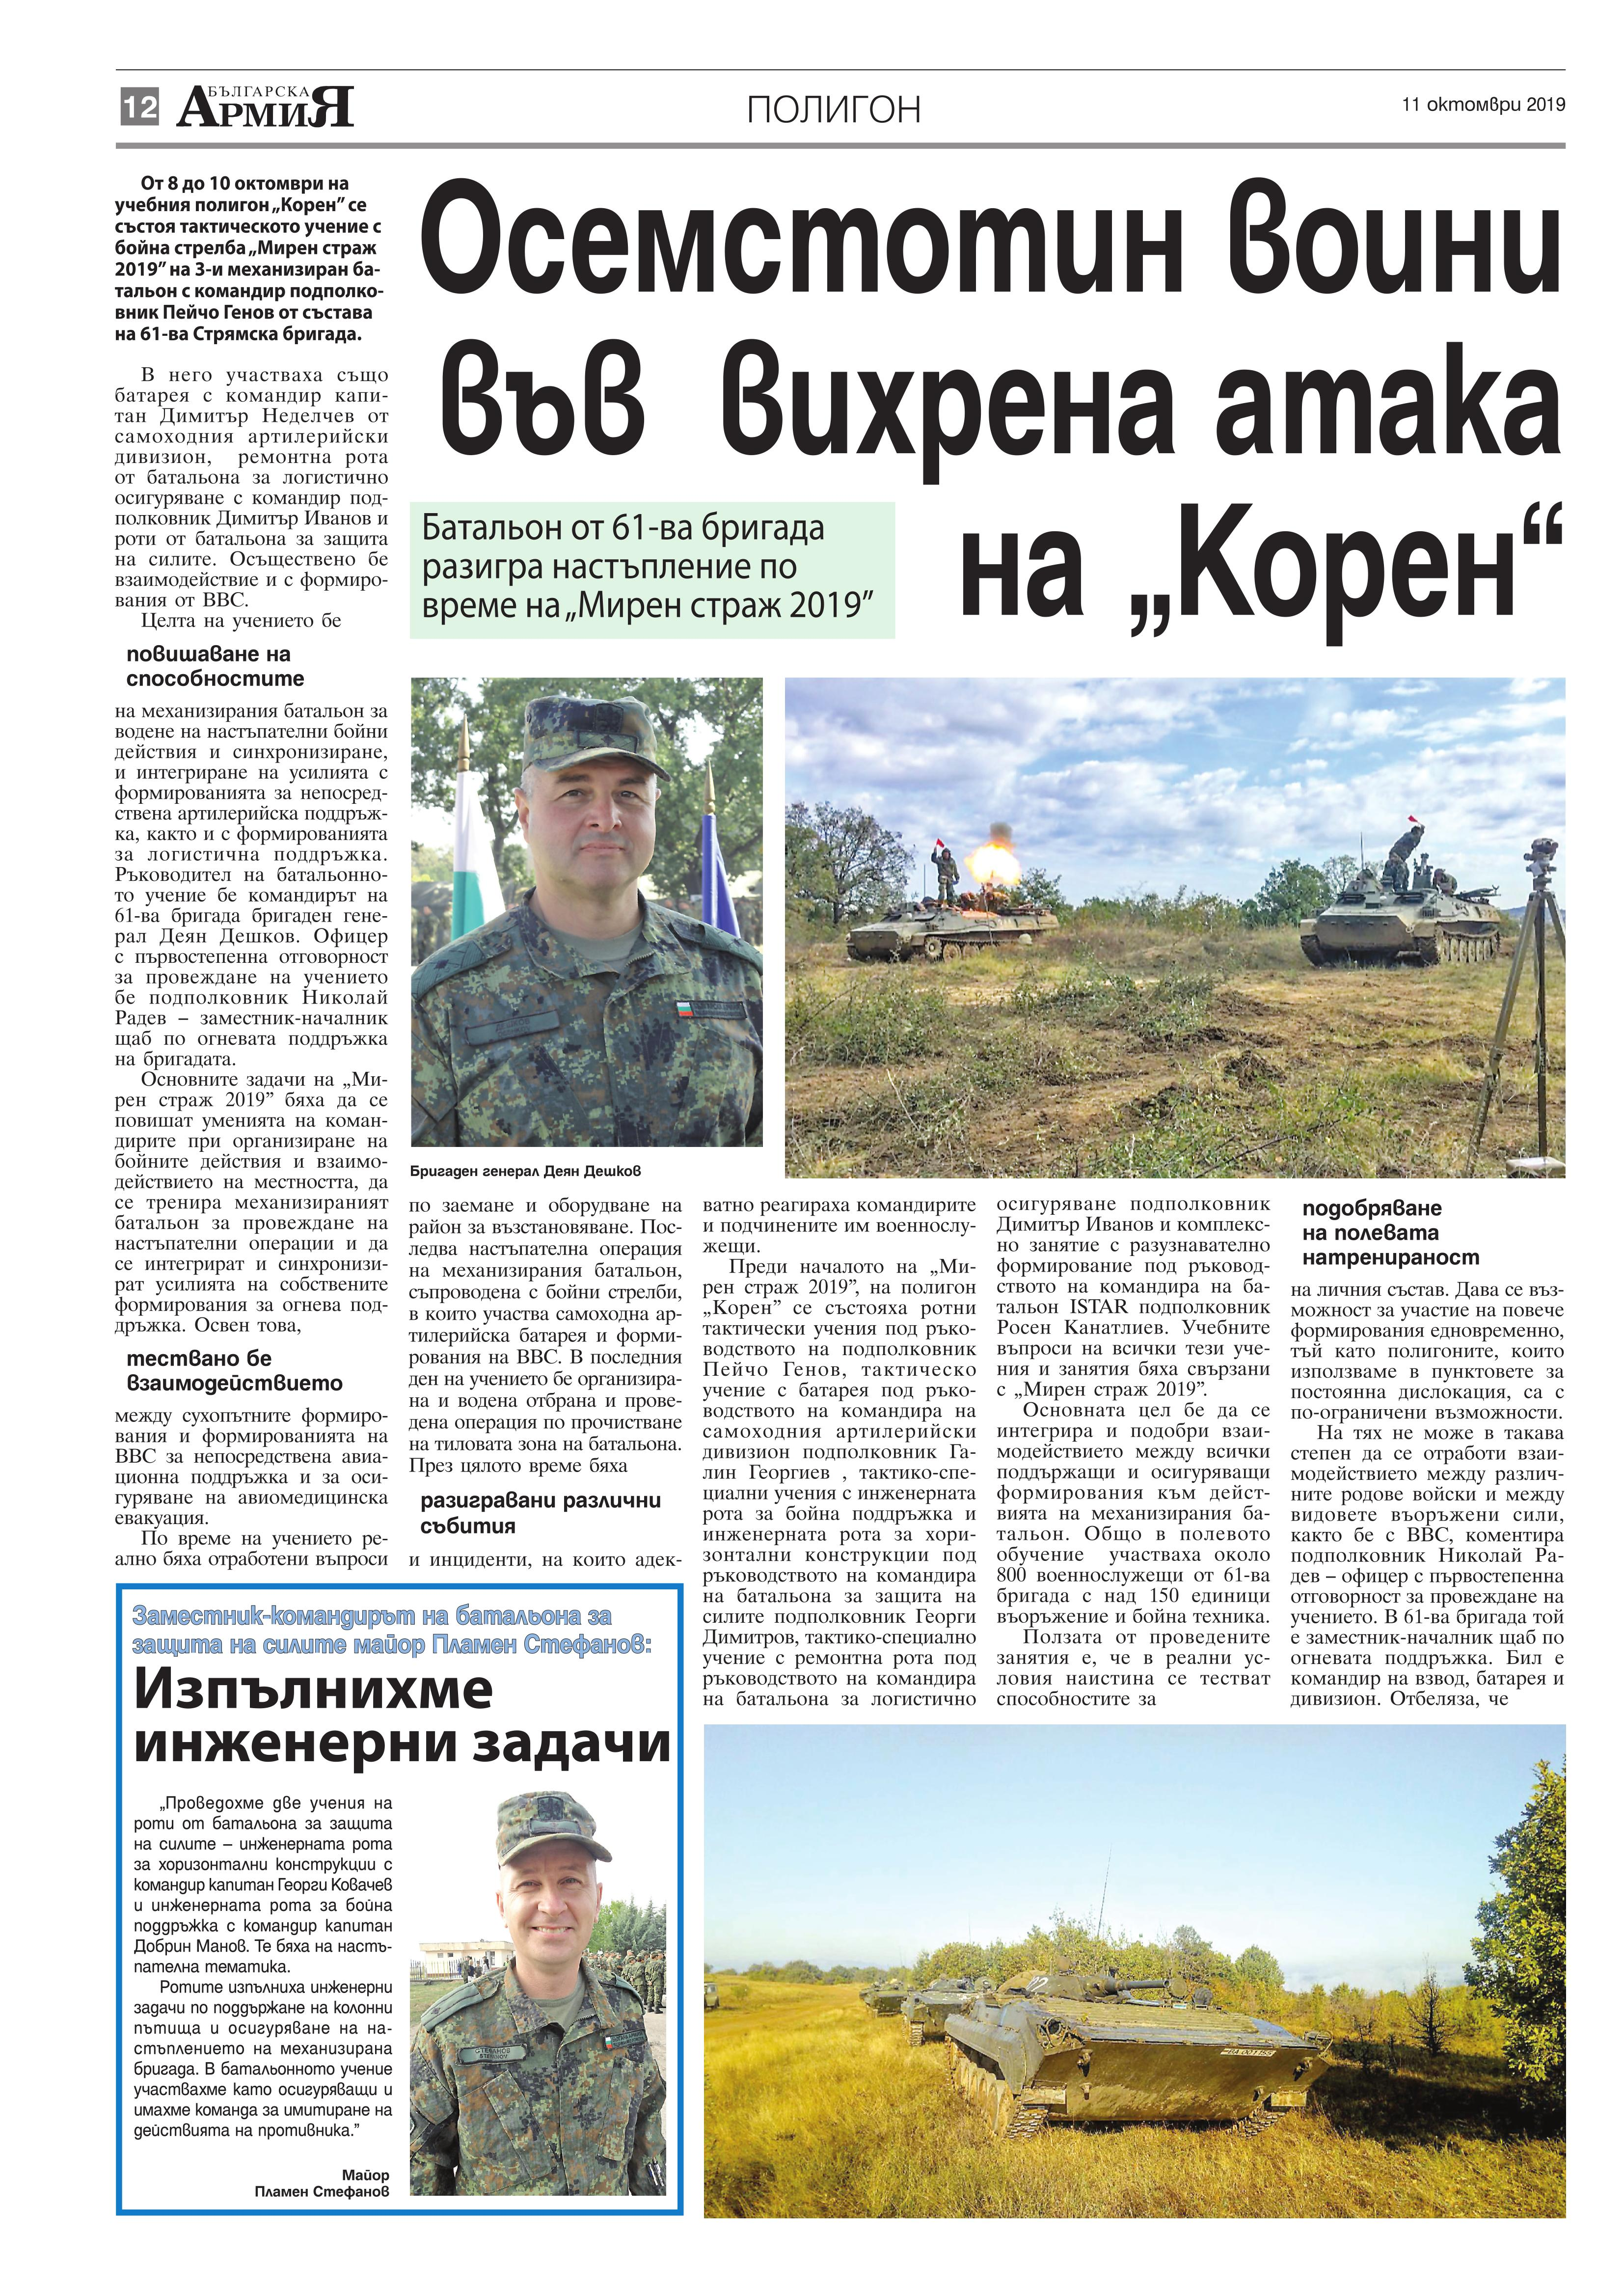 https://www.armymedia.bg/wp-content/uploads/2015/06/12.page1_-110.jpg